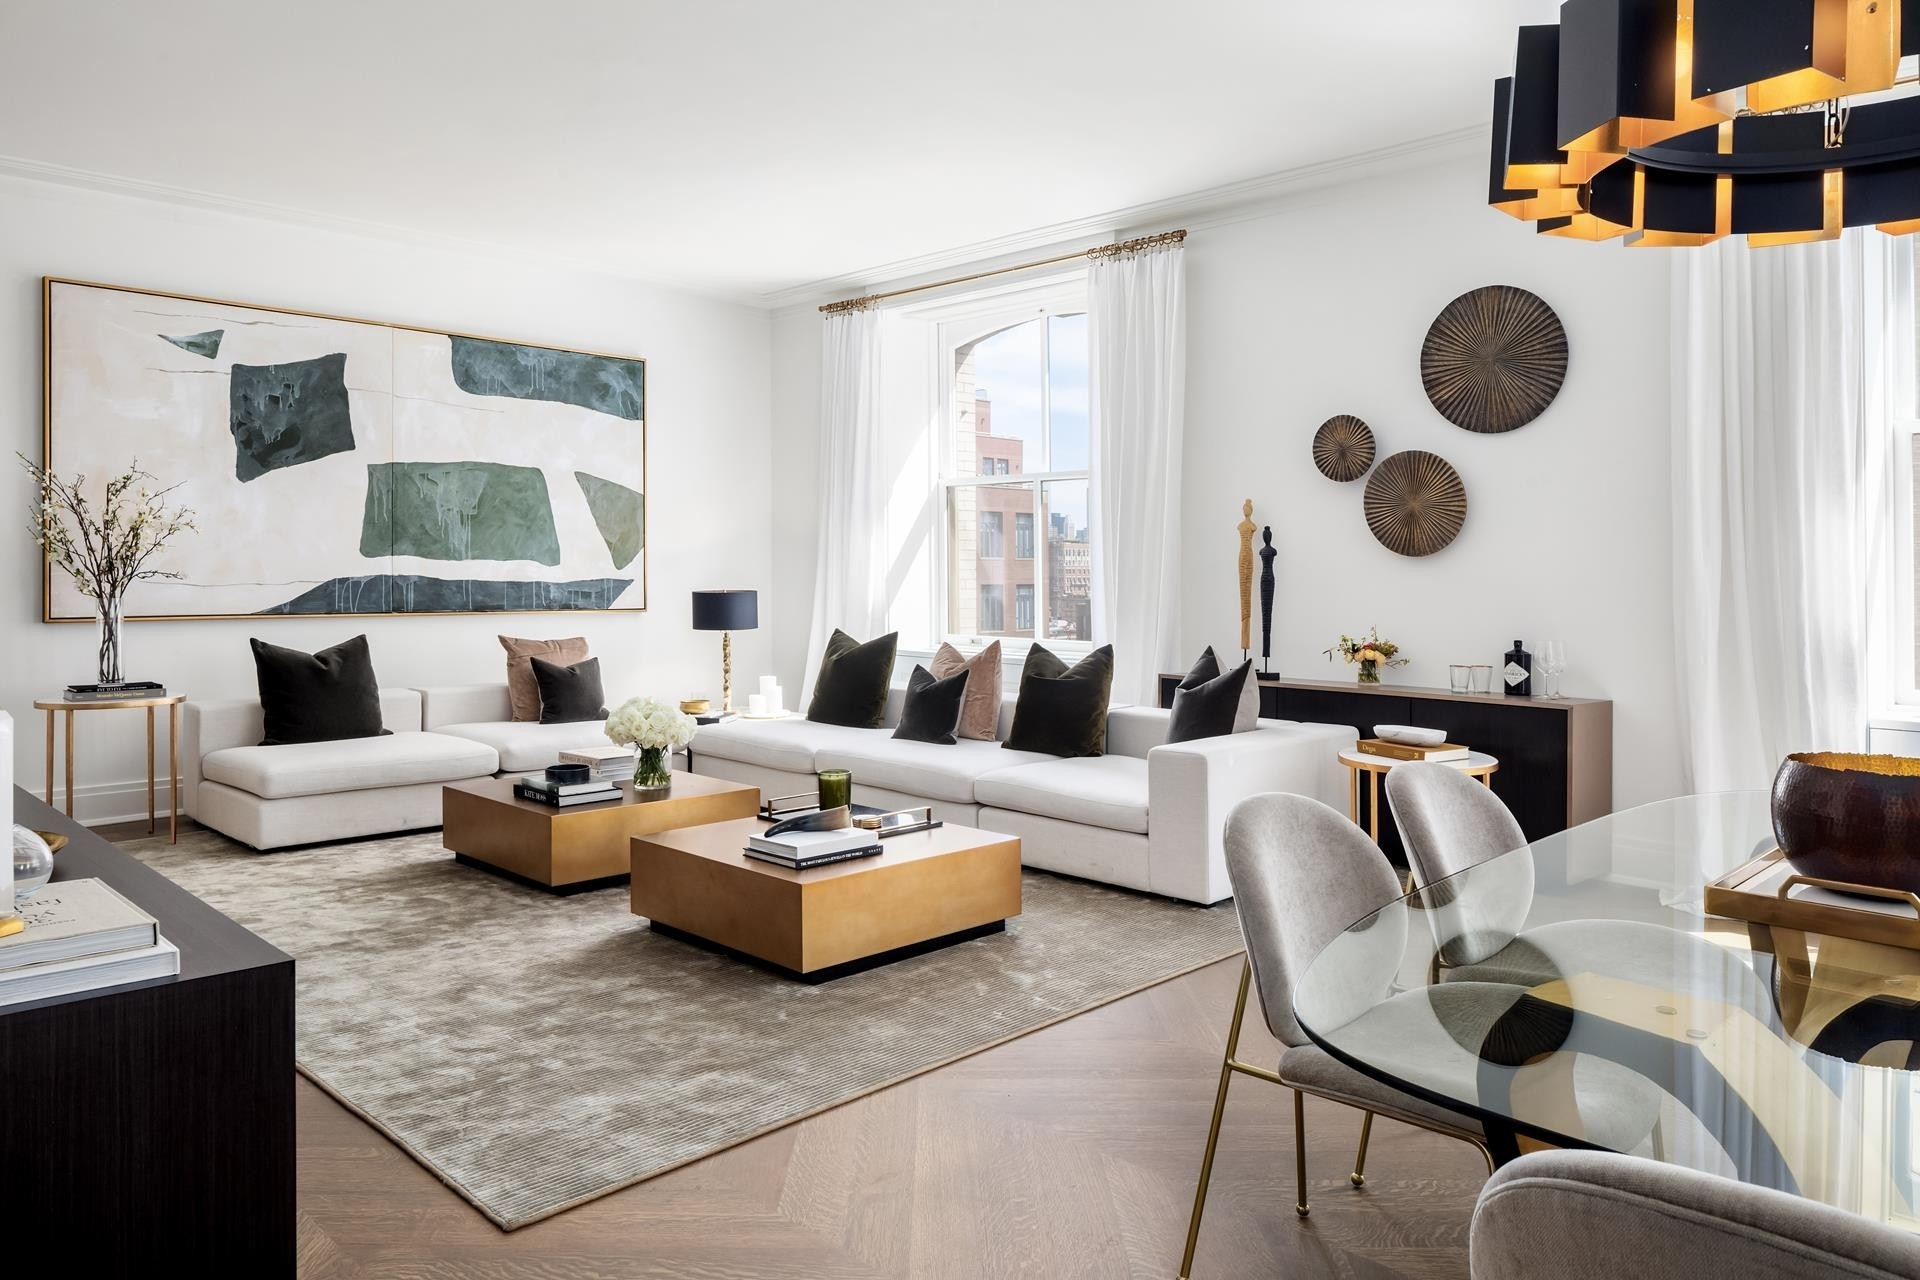 2. Condominiums for Sale at The Belnord, 225 W 86TH ST , 1012 Upper West Side, New York, NY 10024